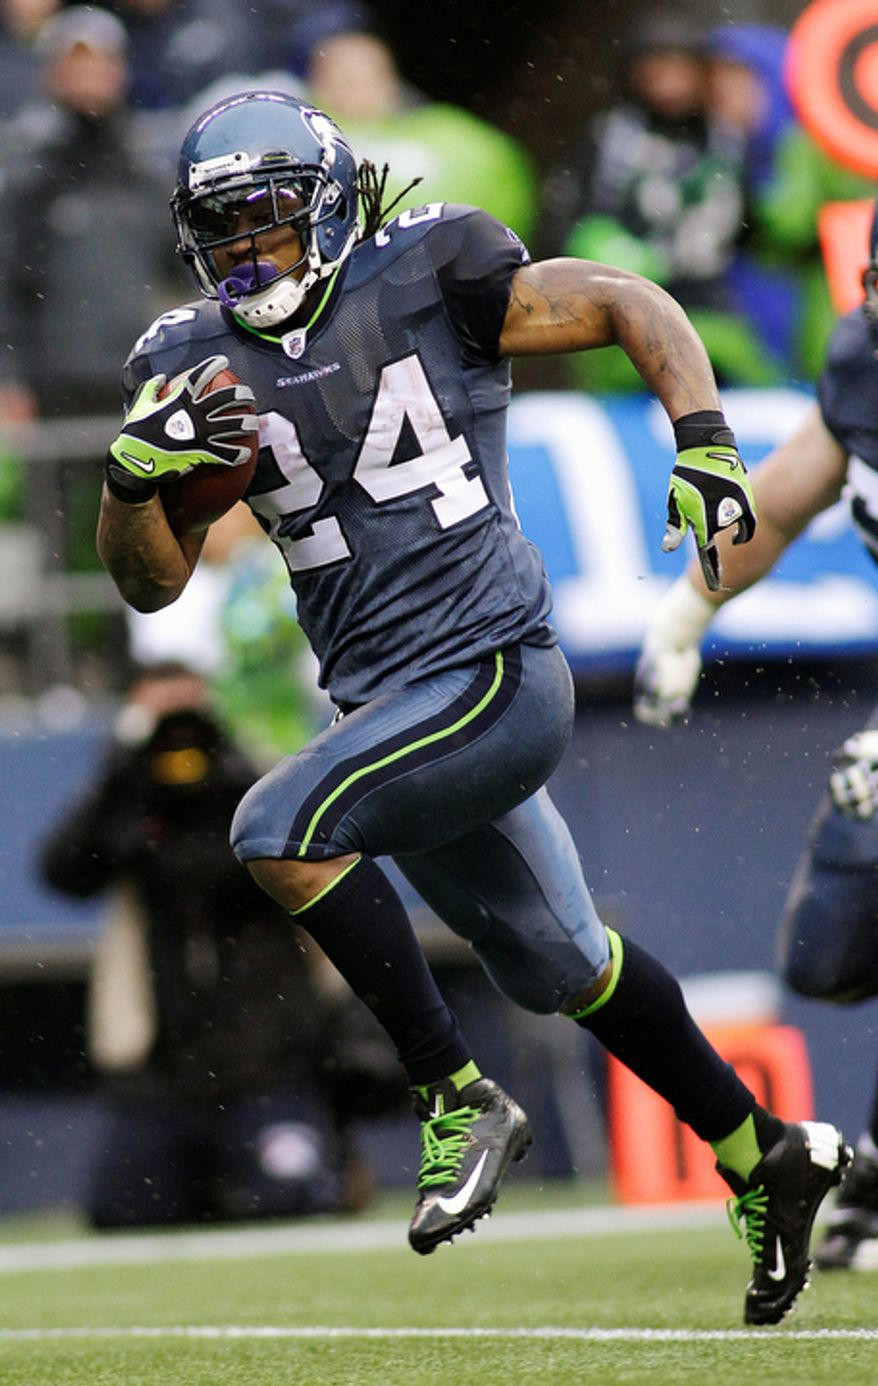 Seattle Seahawks' Marshawn Lynch runs the ball in for a touchdown against the Washington Redskins in the first half of an NFL football game. (AP Photo/Ted S. Warren)